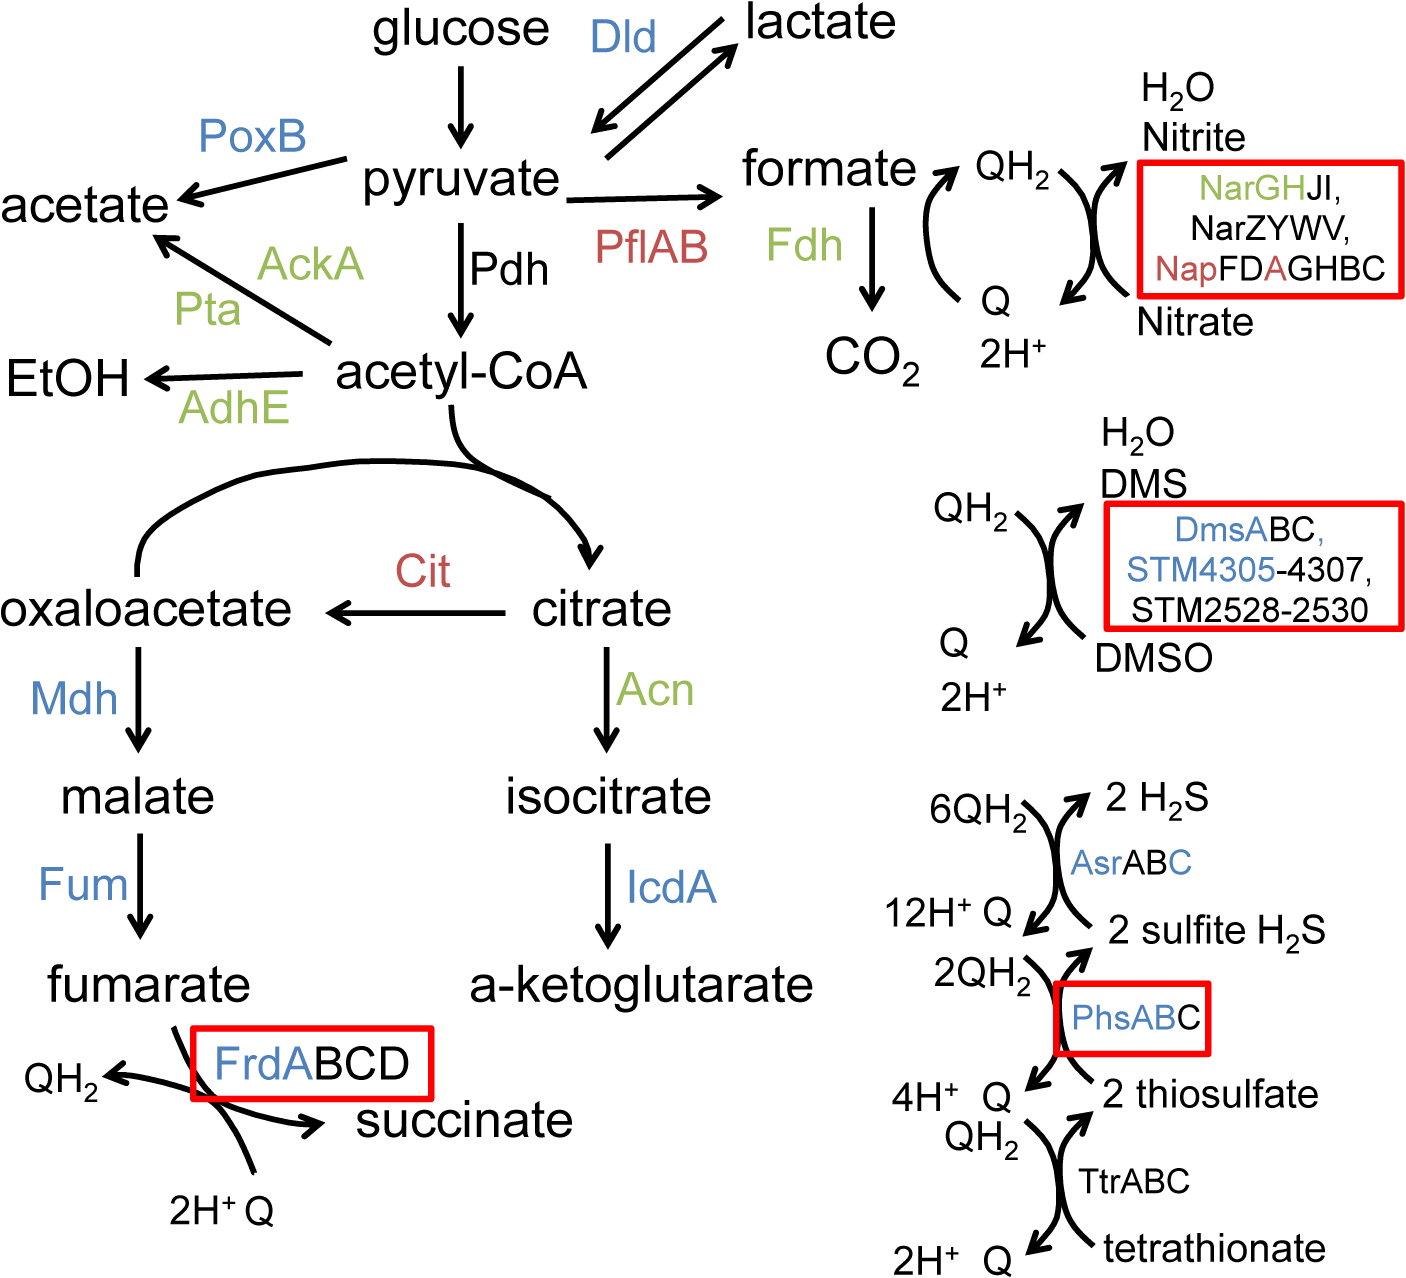 Anaerobic carbon metabolism is severely disrupted in msDNA-deficient mutants.